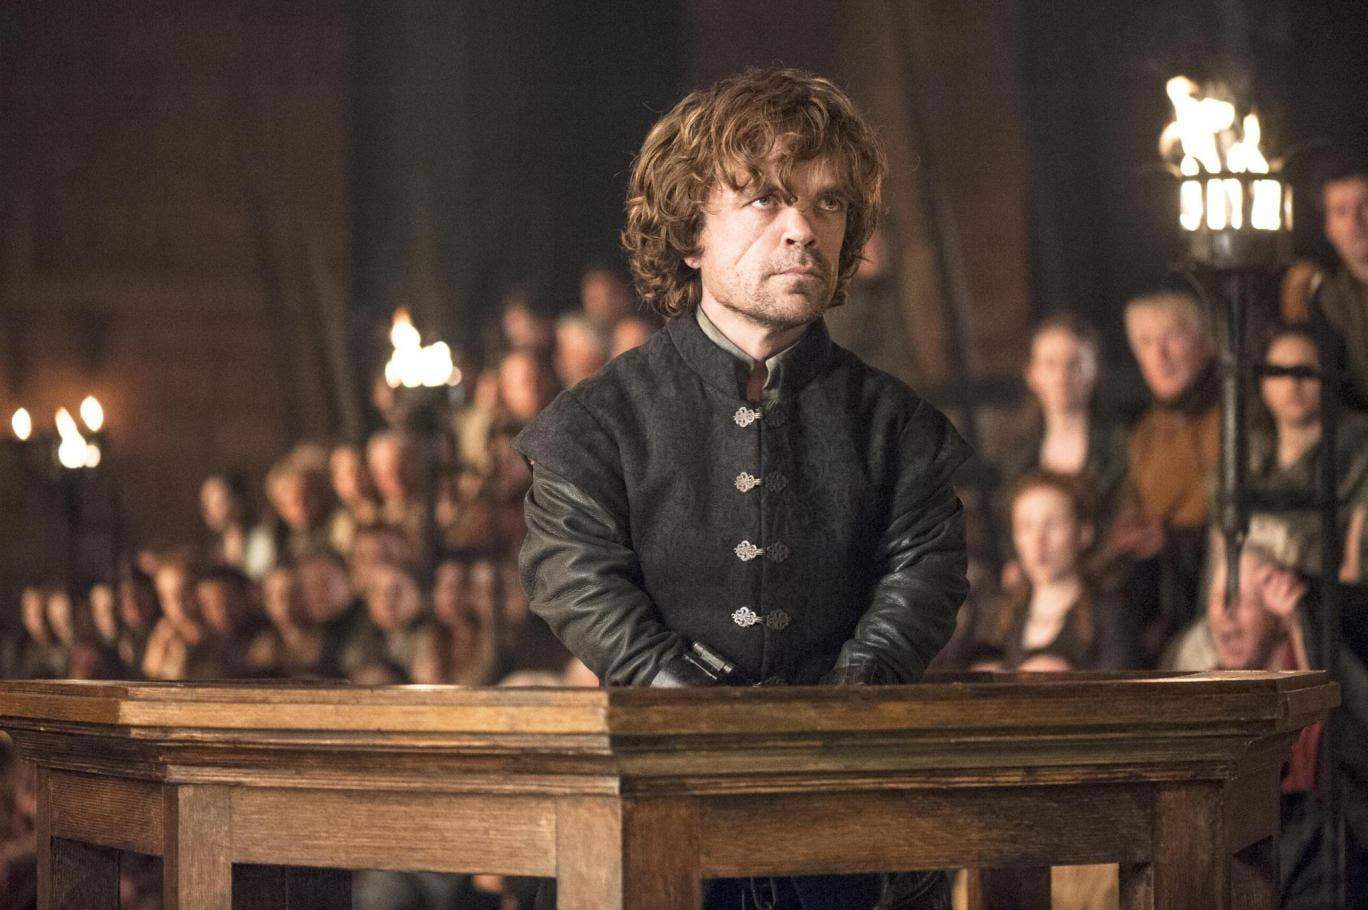 Tyrion in the dock as he tries to defend his name